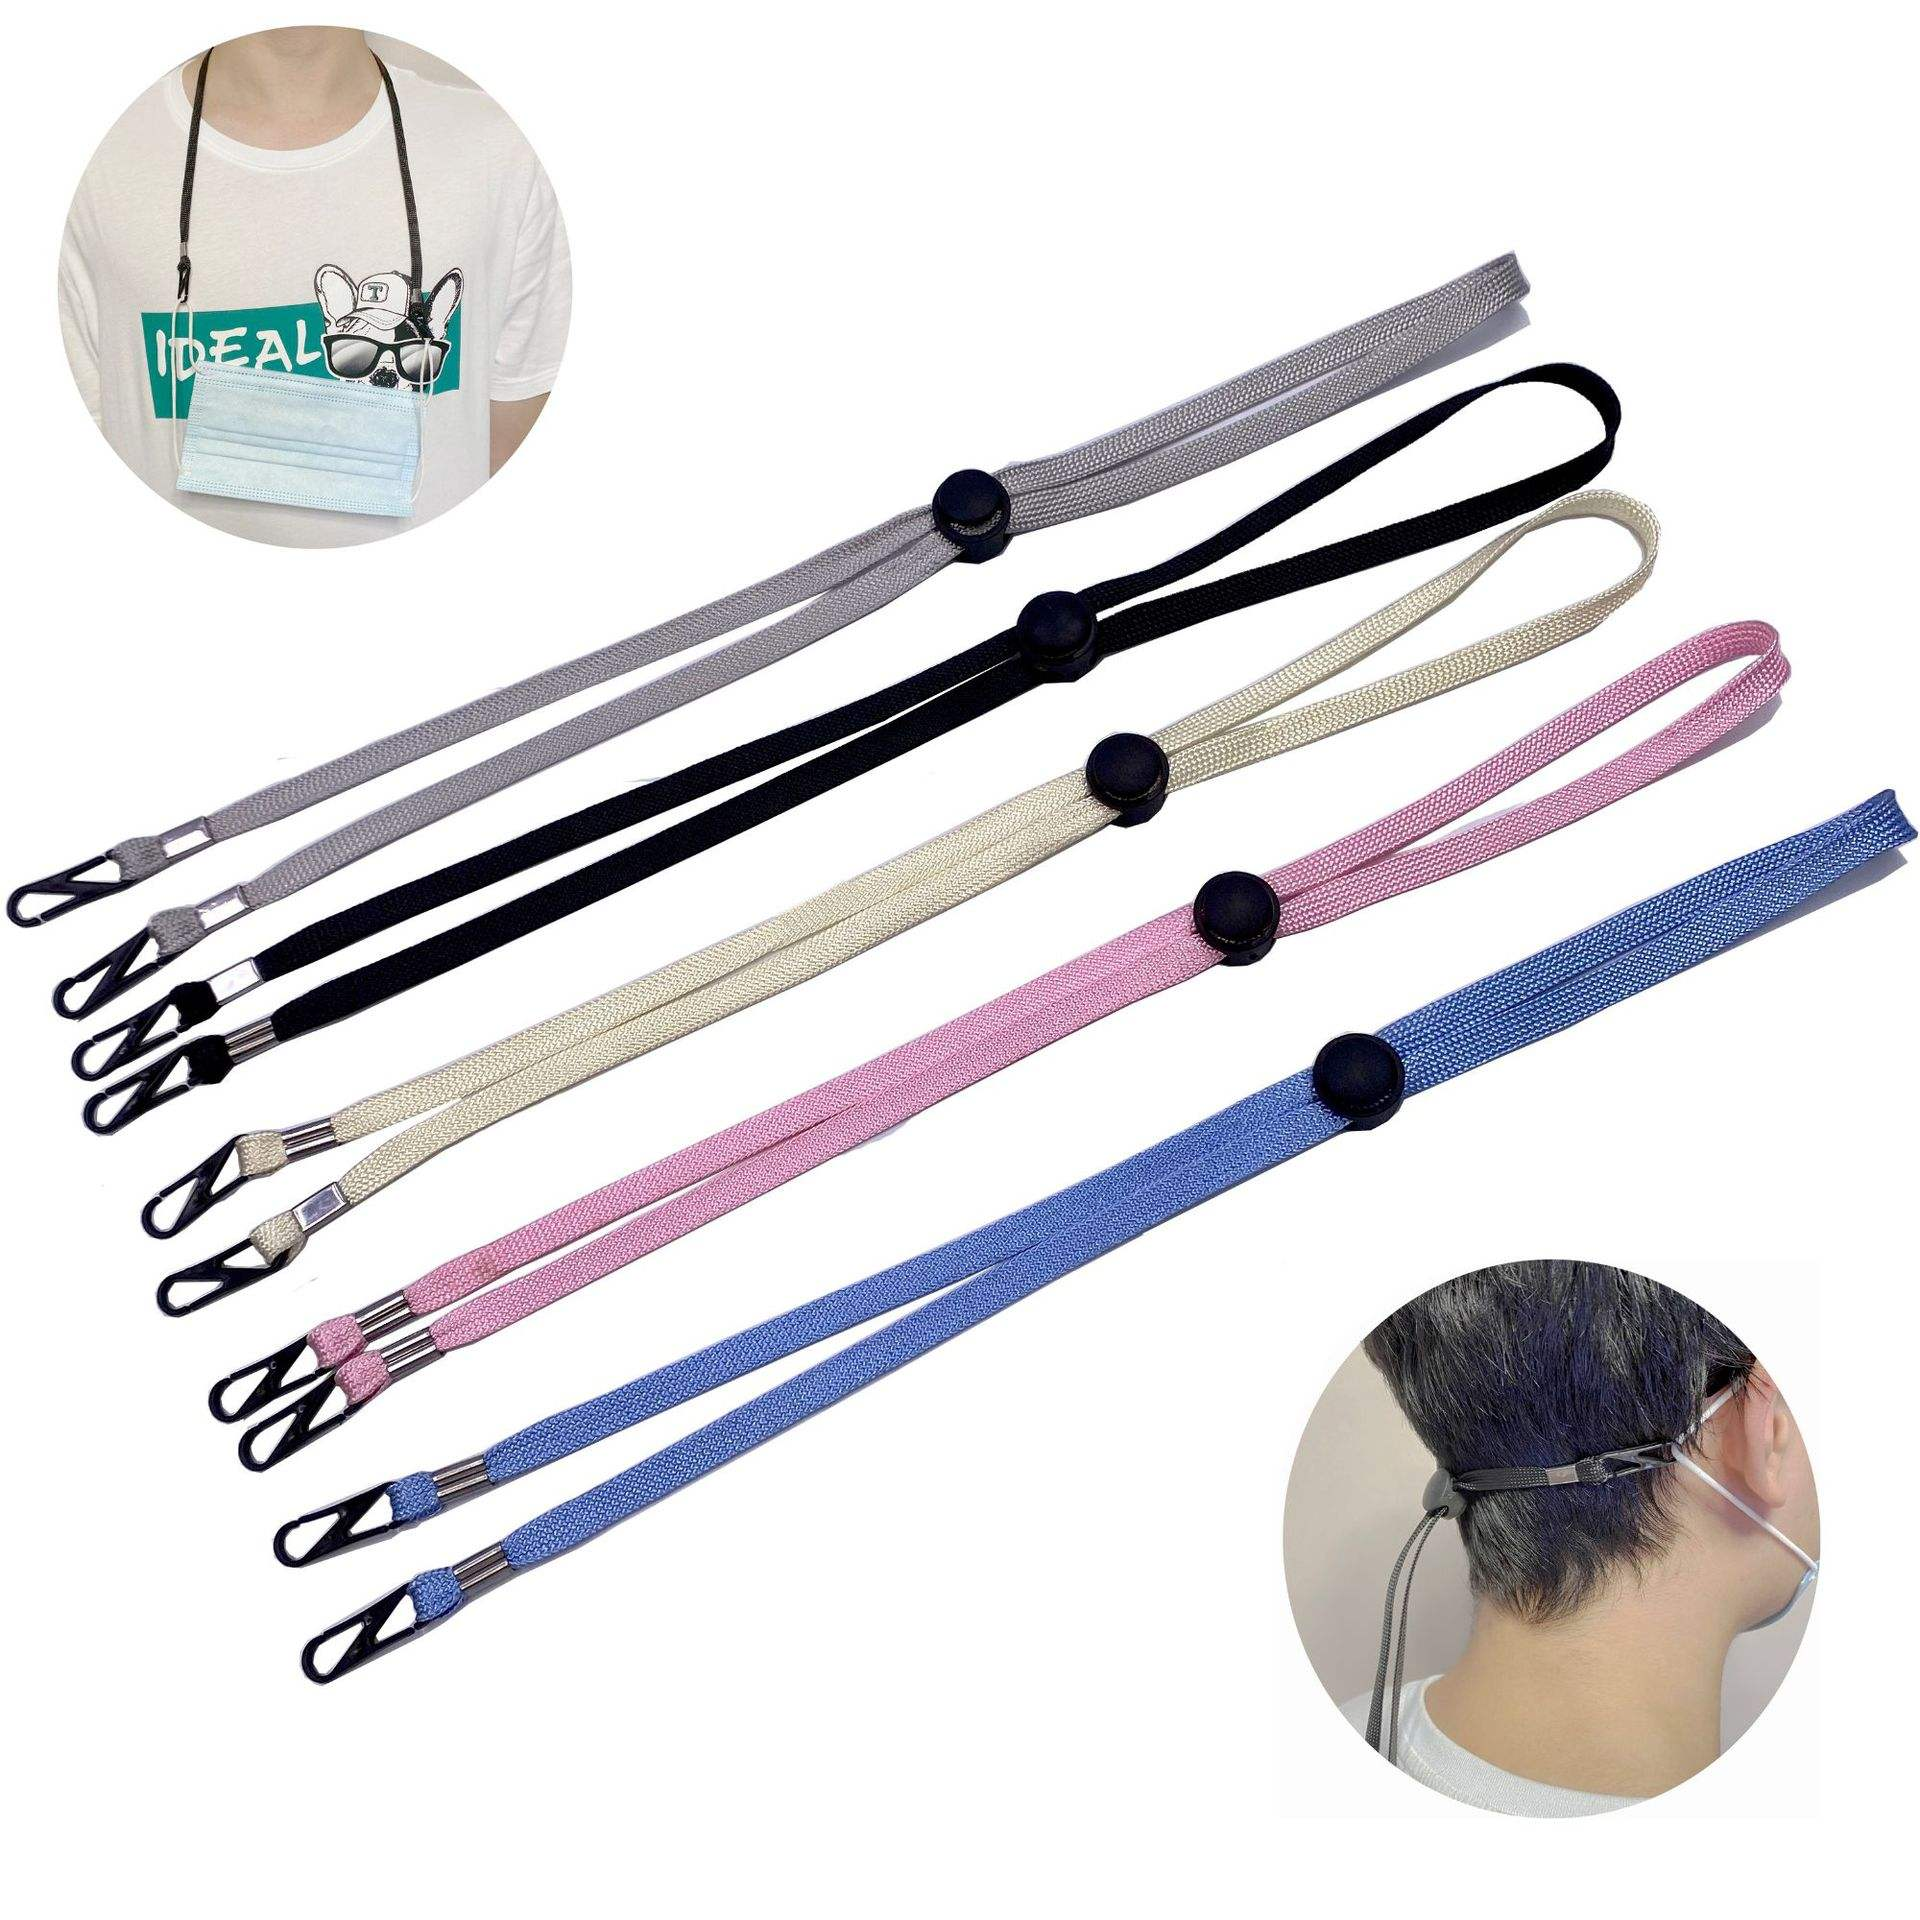 Durable Polypropylene Fiber 70cm, Length Adjustable Custom Logo Printing M ask Holder Lanyard/